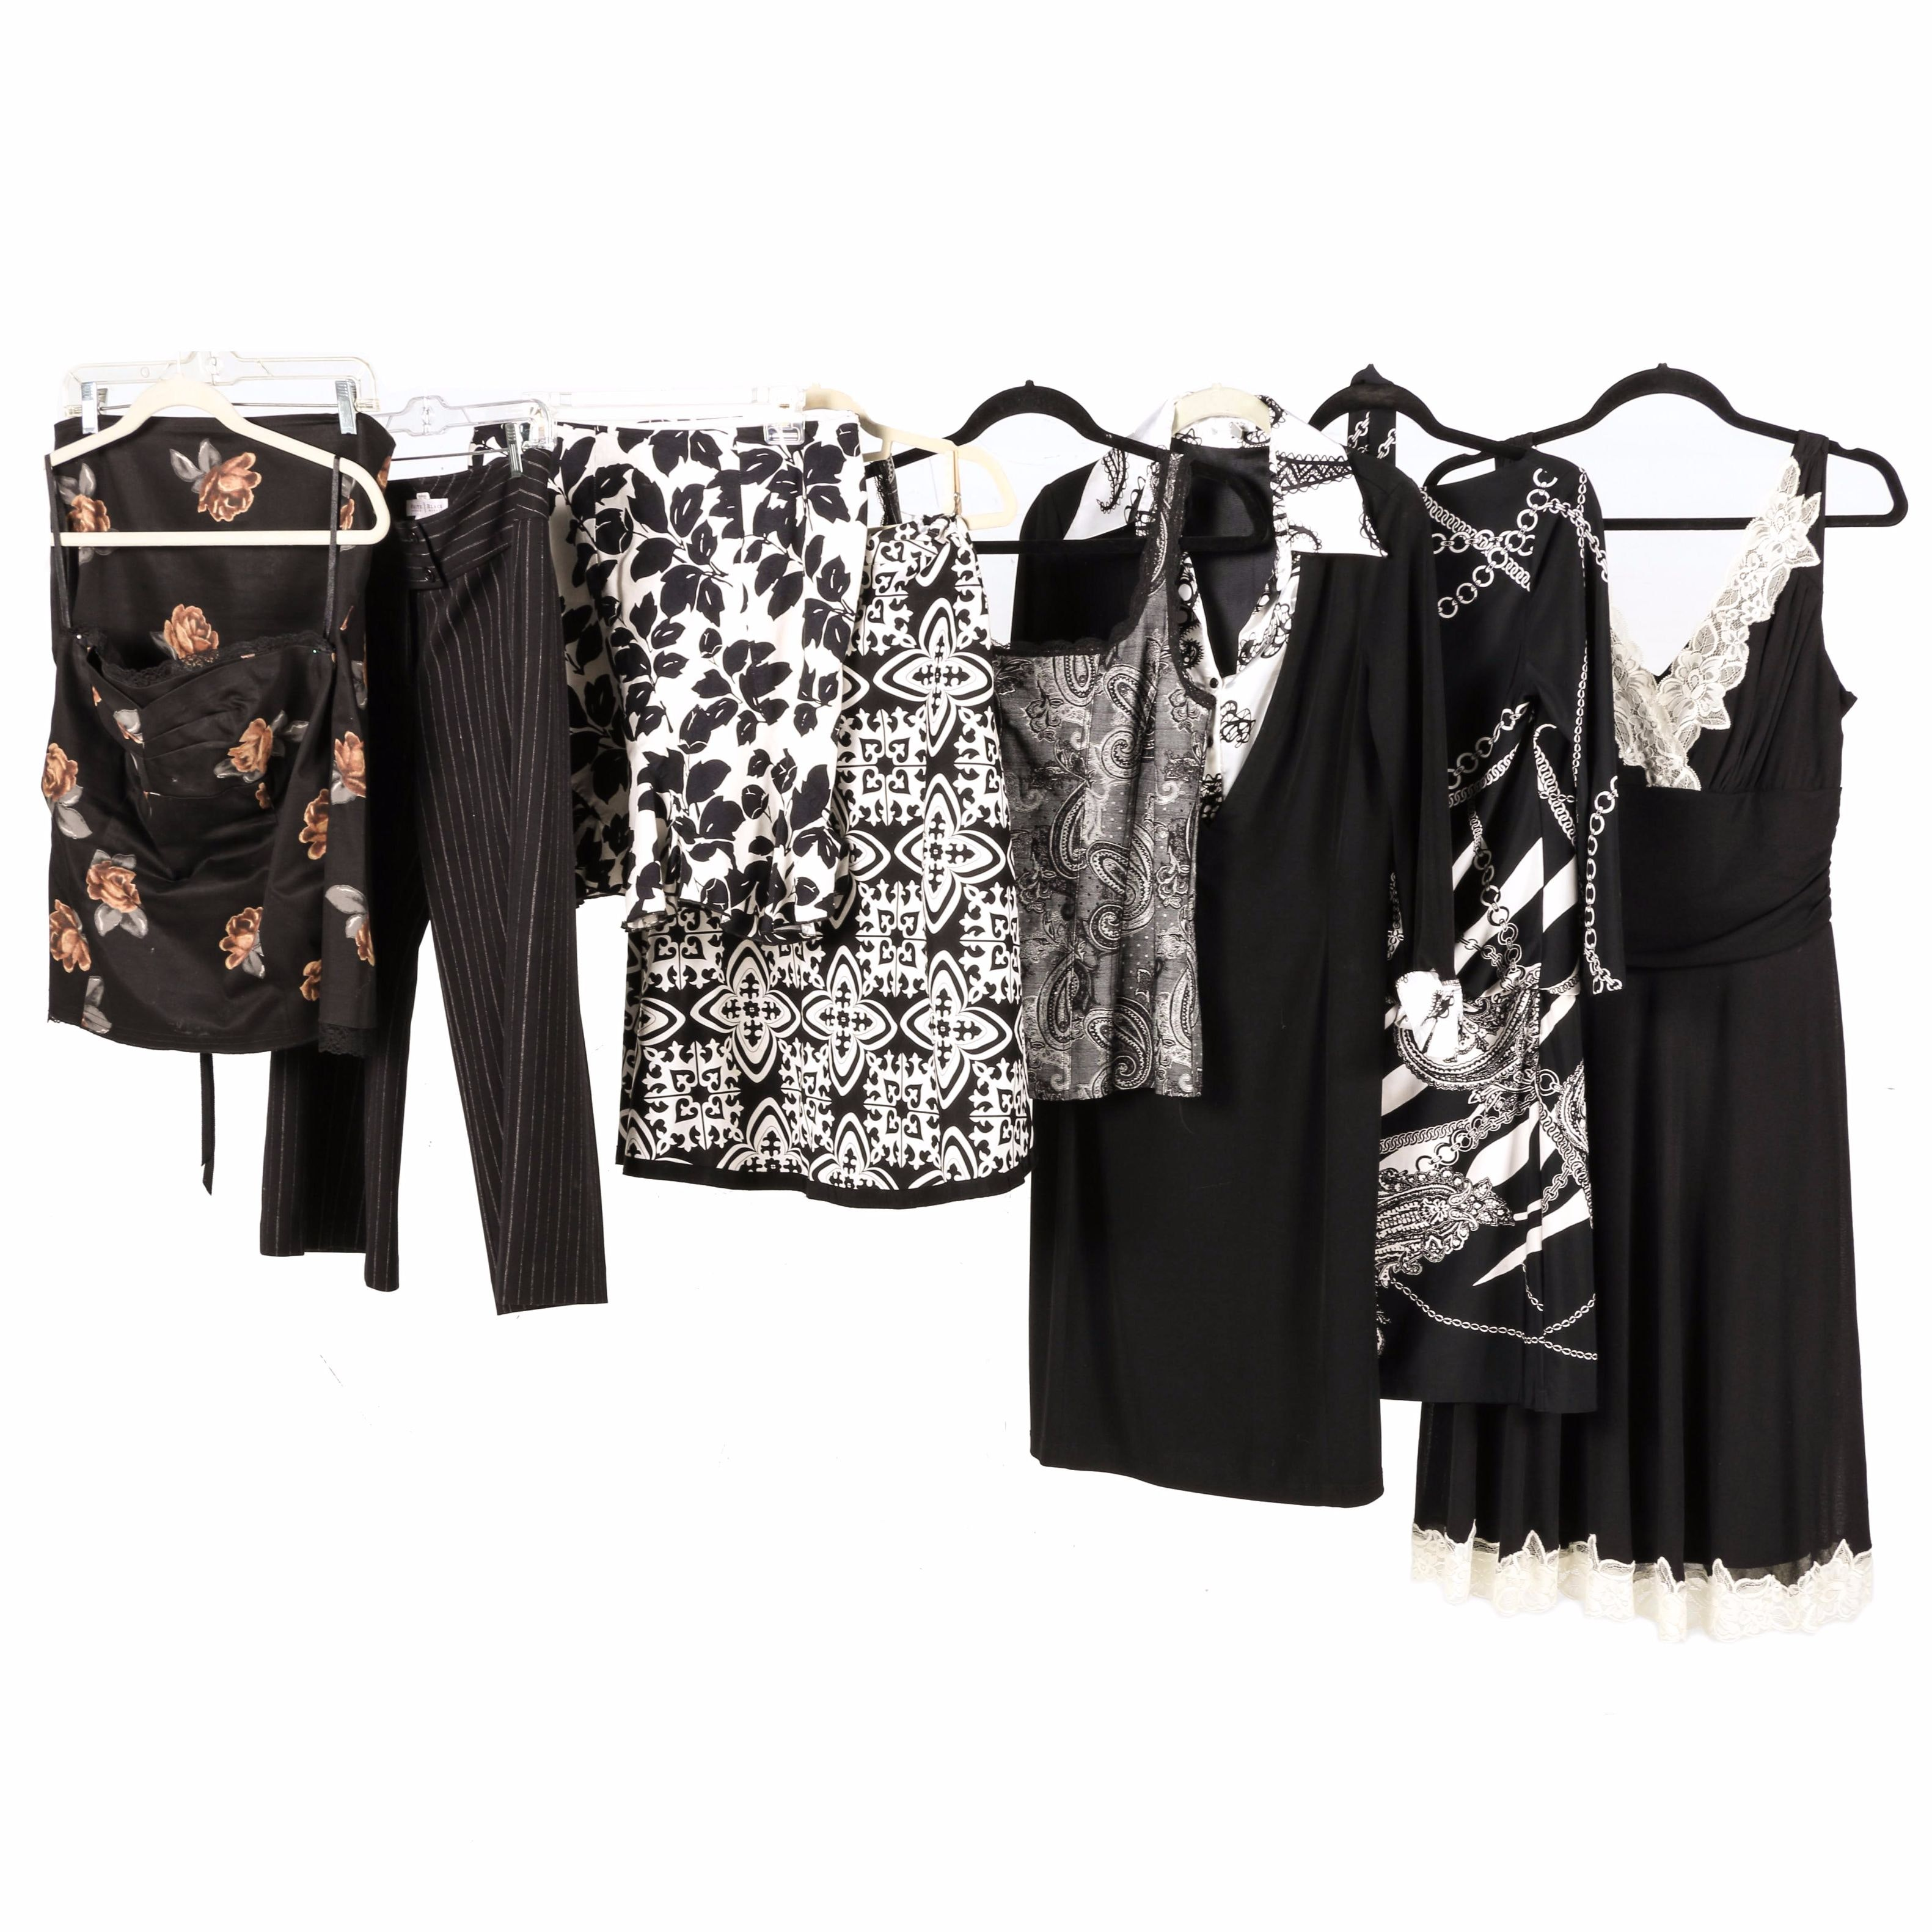 Women's Black and White Clothing Featuring White House Black Market